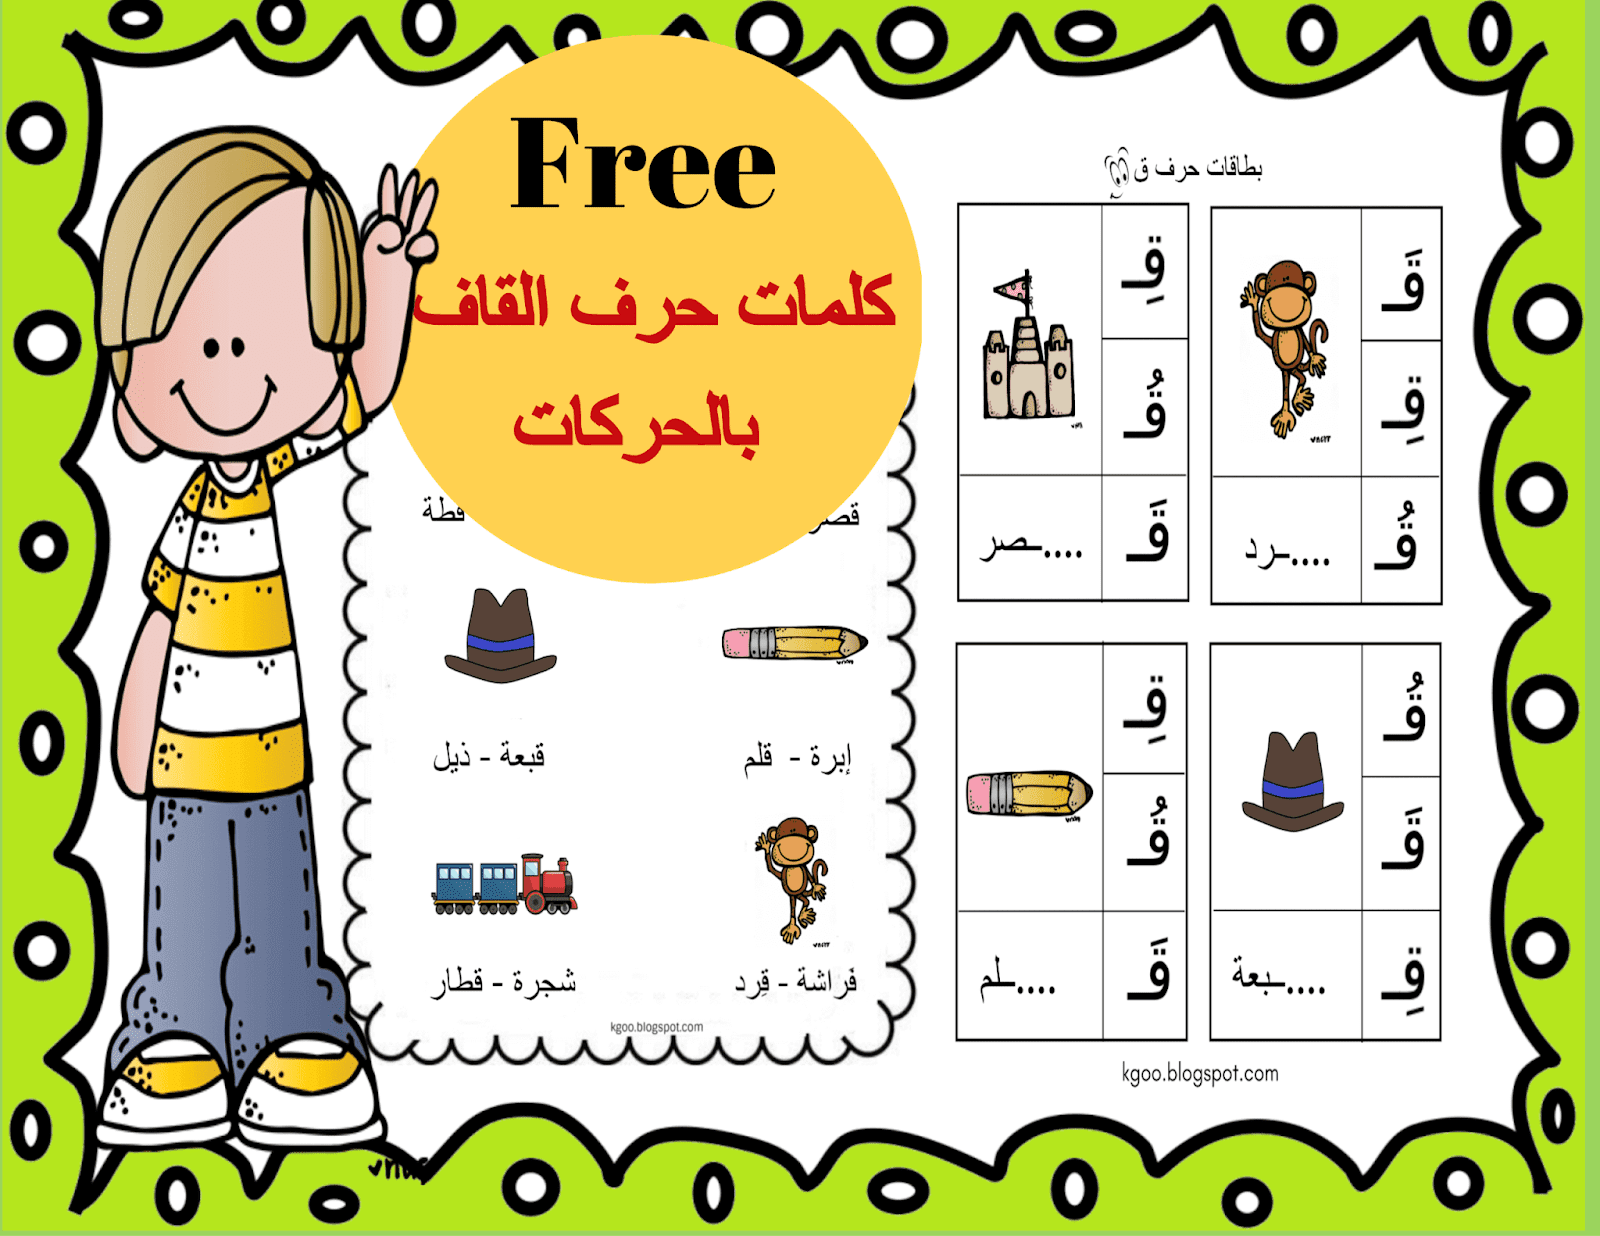 52 Arabic Free Worksheets For Kids Ideas 11